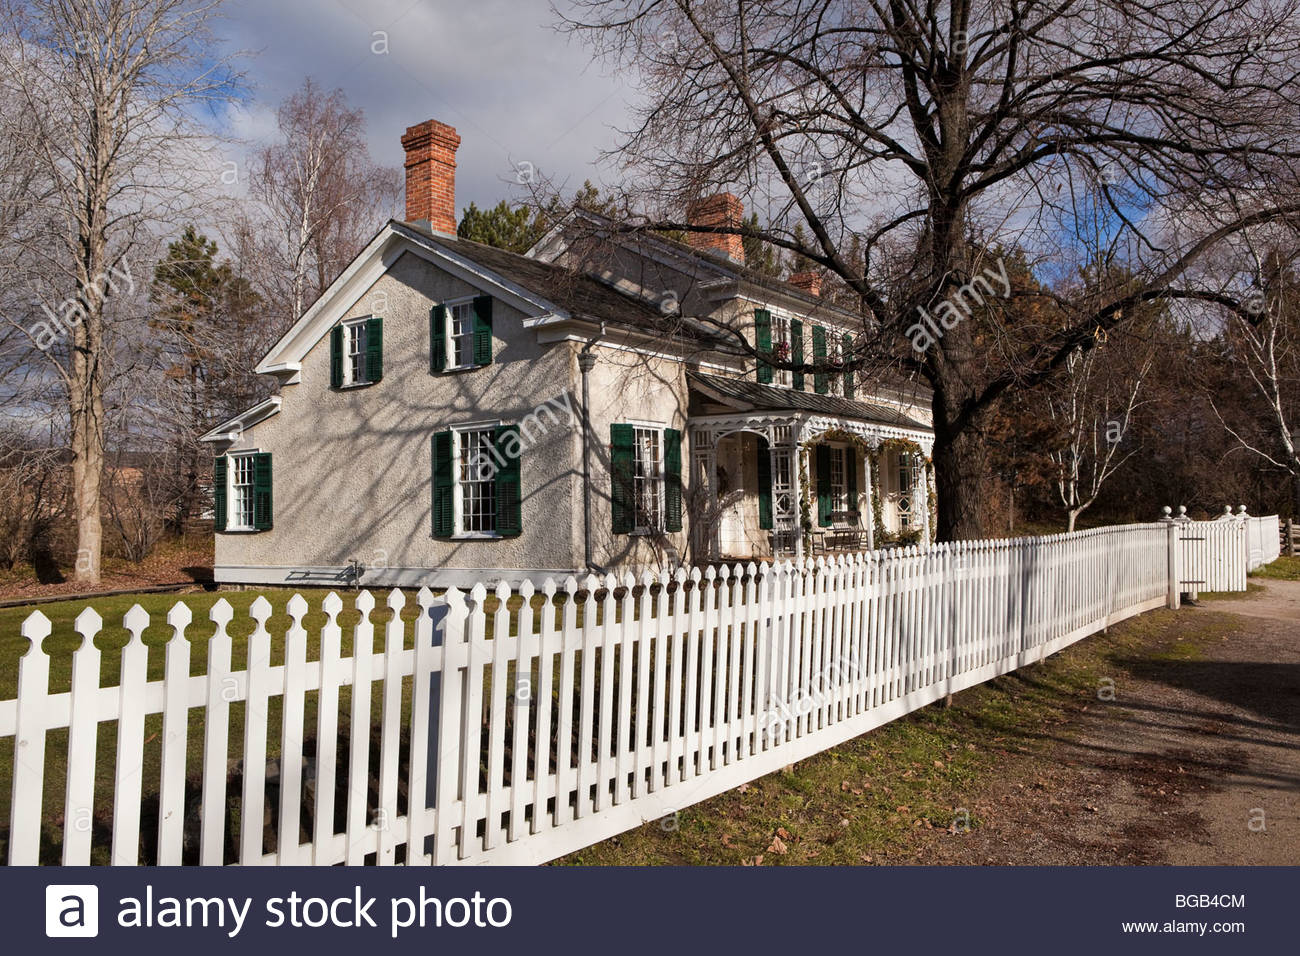 picket-fence-of-the-doctors-house-in-bla